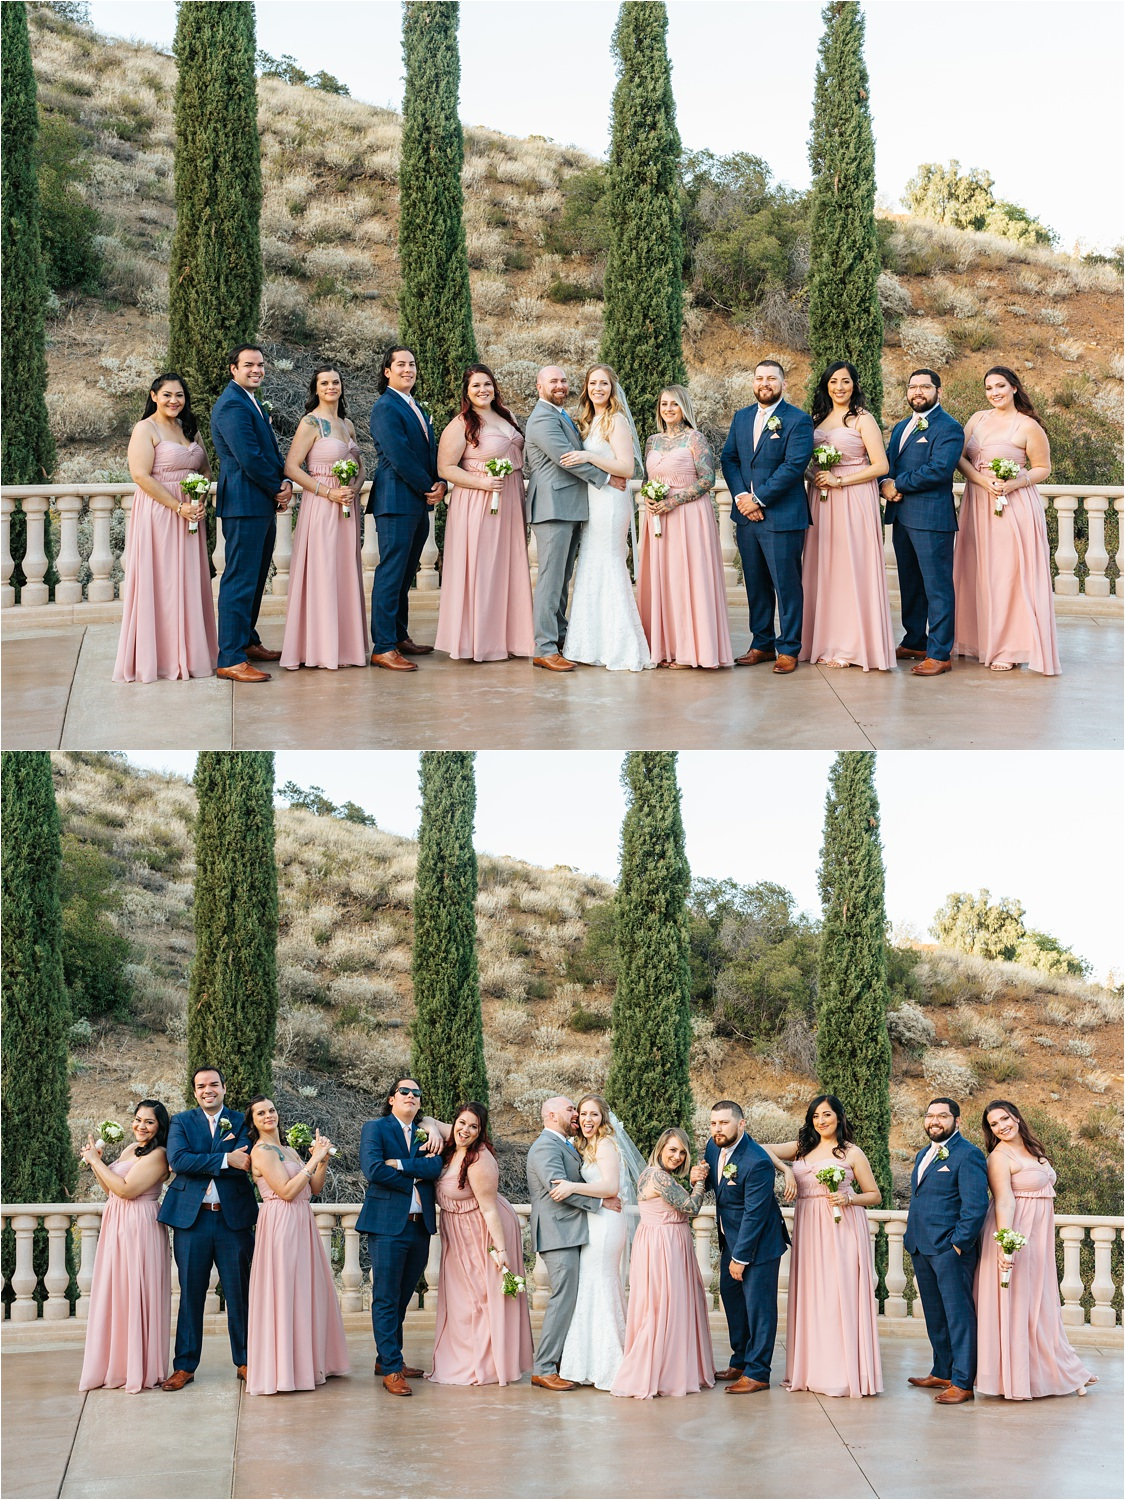 Wedding Party Photos - Bridesmaids and Groomsmen with the Bride and Groom - https://brittneyhannonphotography.com